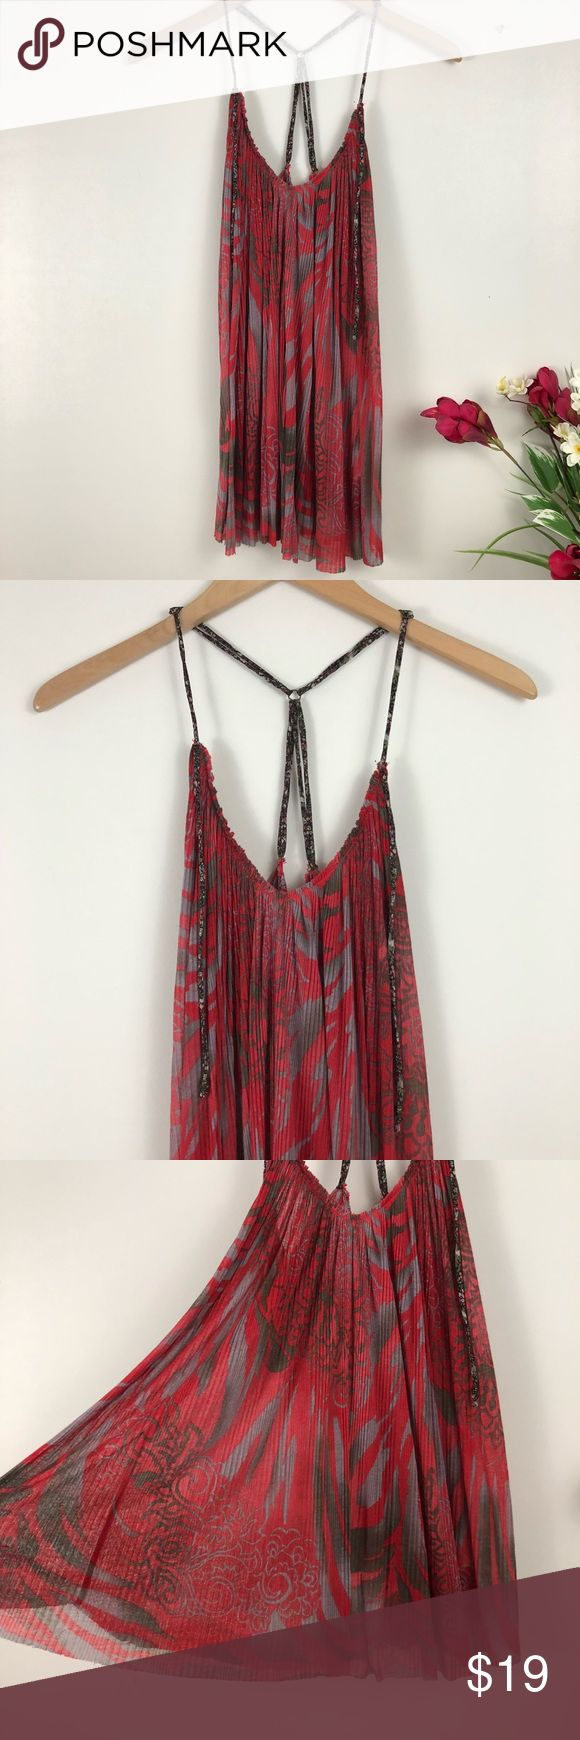 Free People Chiffon Strappy Pleated Tank Top Semi-sheer chiffon tank top from Free People. The pattern is on a ten background. It features adjustable straps and a Raw neckline and hem. It's Pleated all over which allows it to drape nicely. It's in excellent condition with no flaws. (Location) {no trades - no modeling} Free People Tops Tank Tops